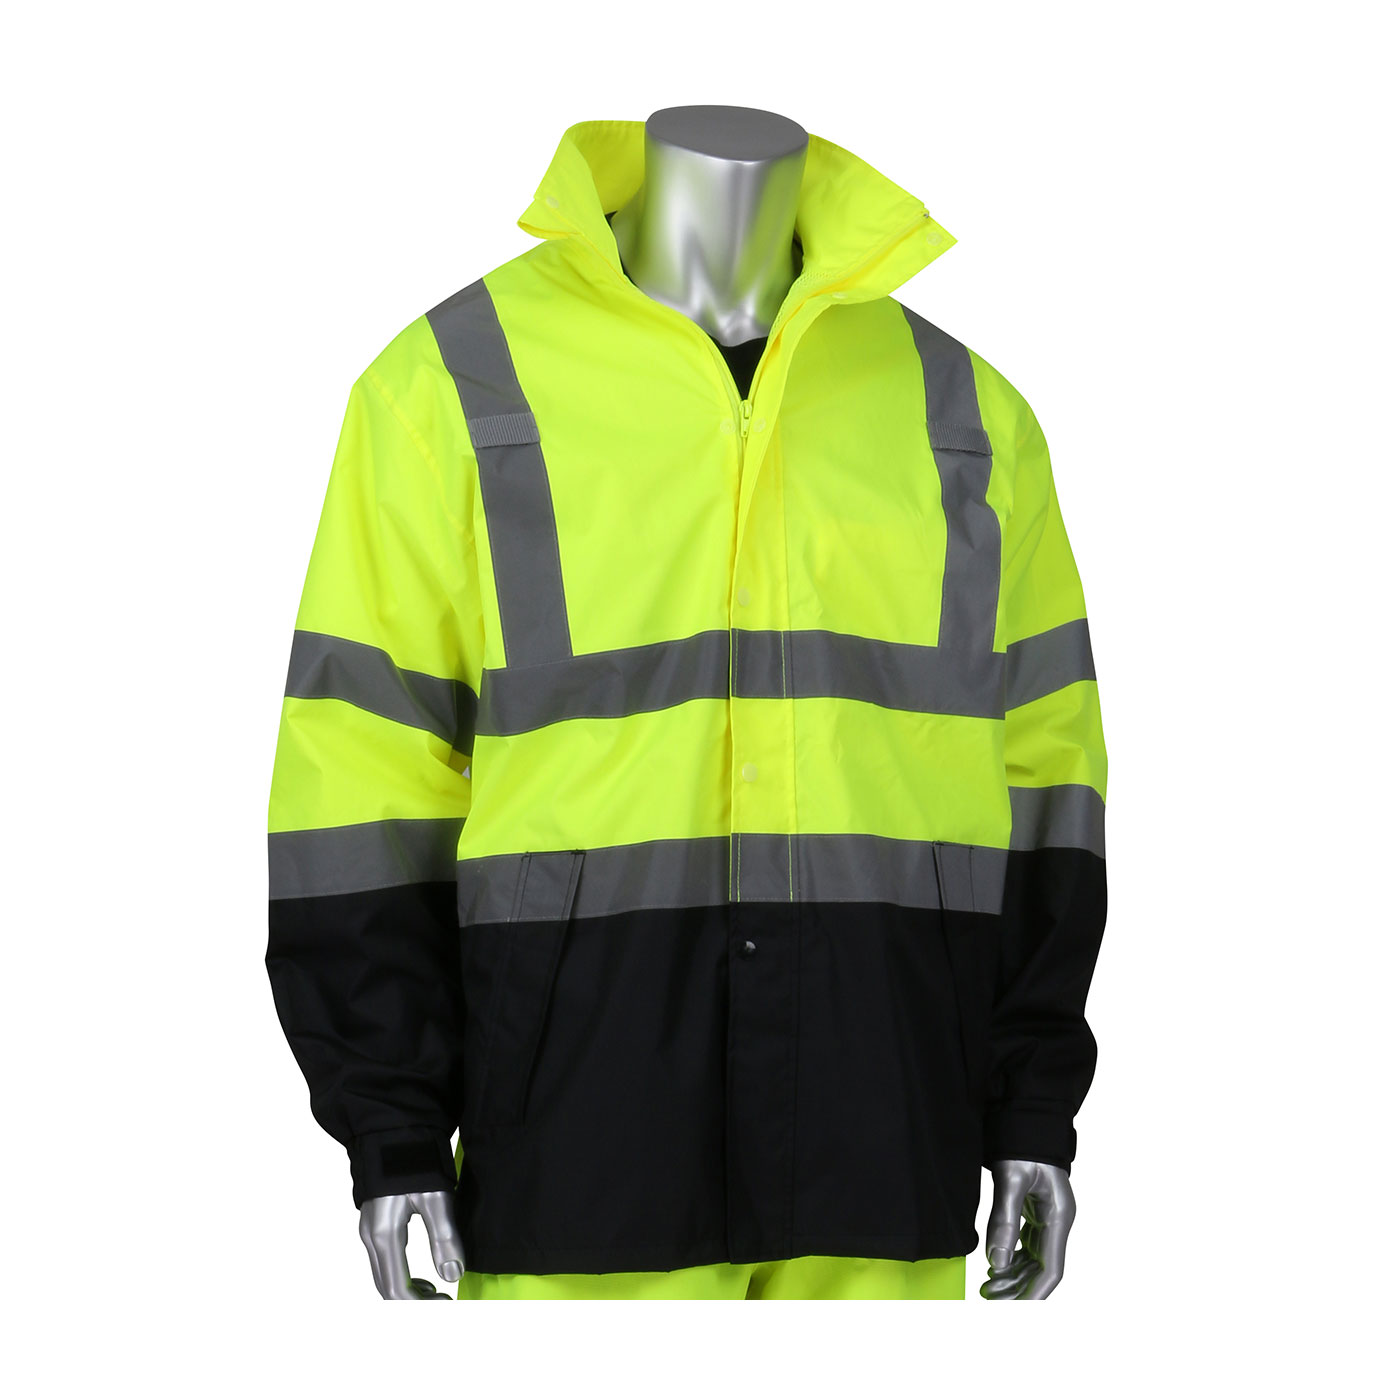 ANSI Type R Class 3 Value All Purpose Waterproof Jacket with Black Bottom, Hi-Vis Yellow, L-XL